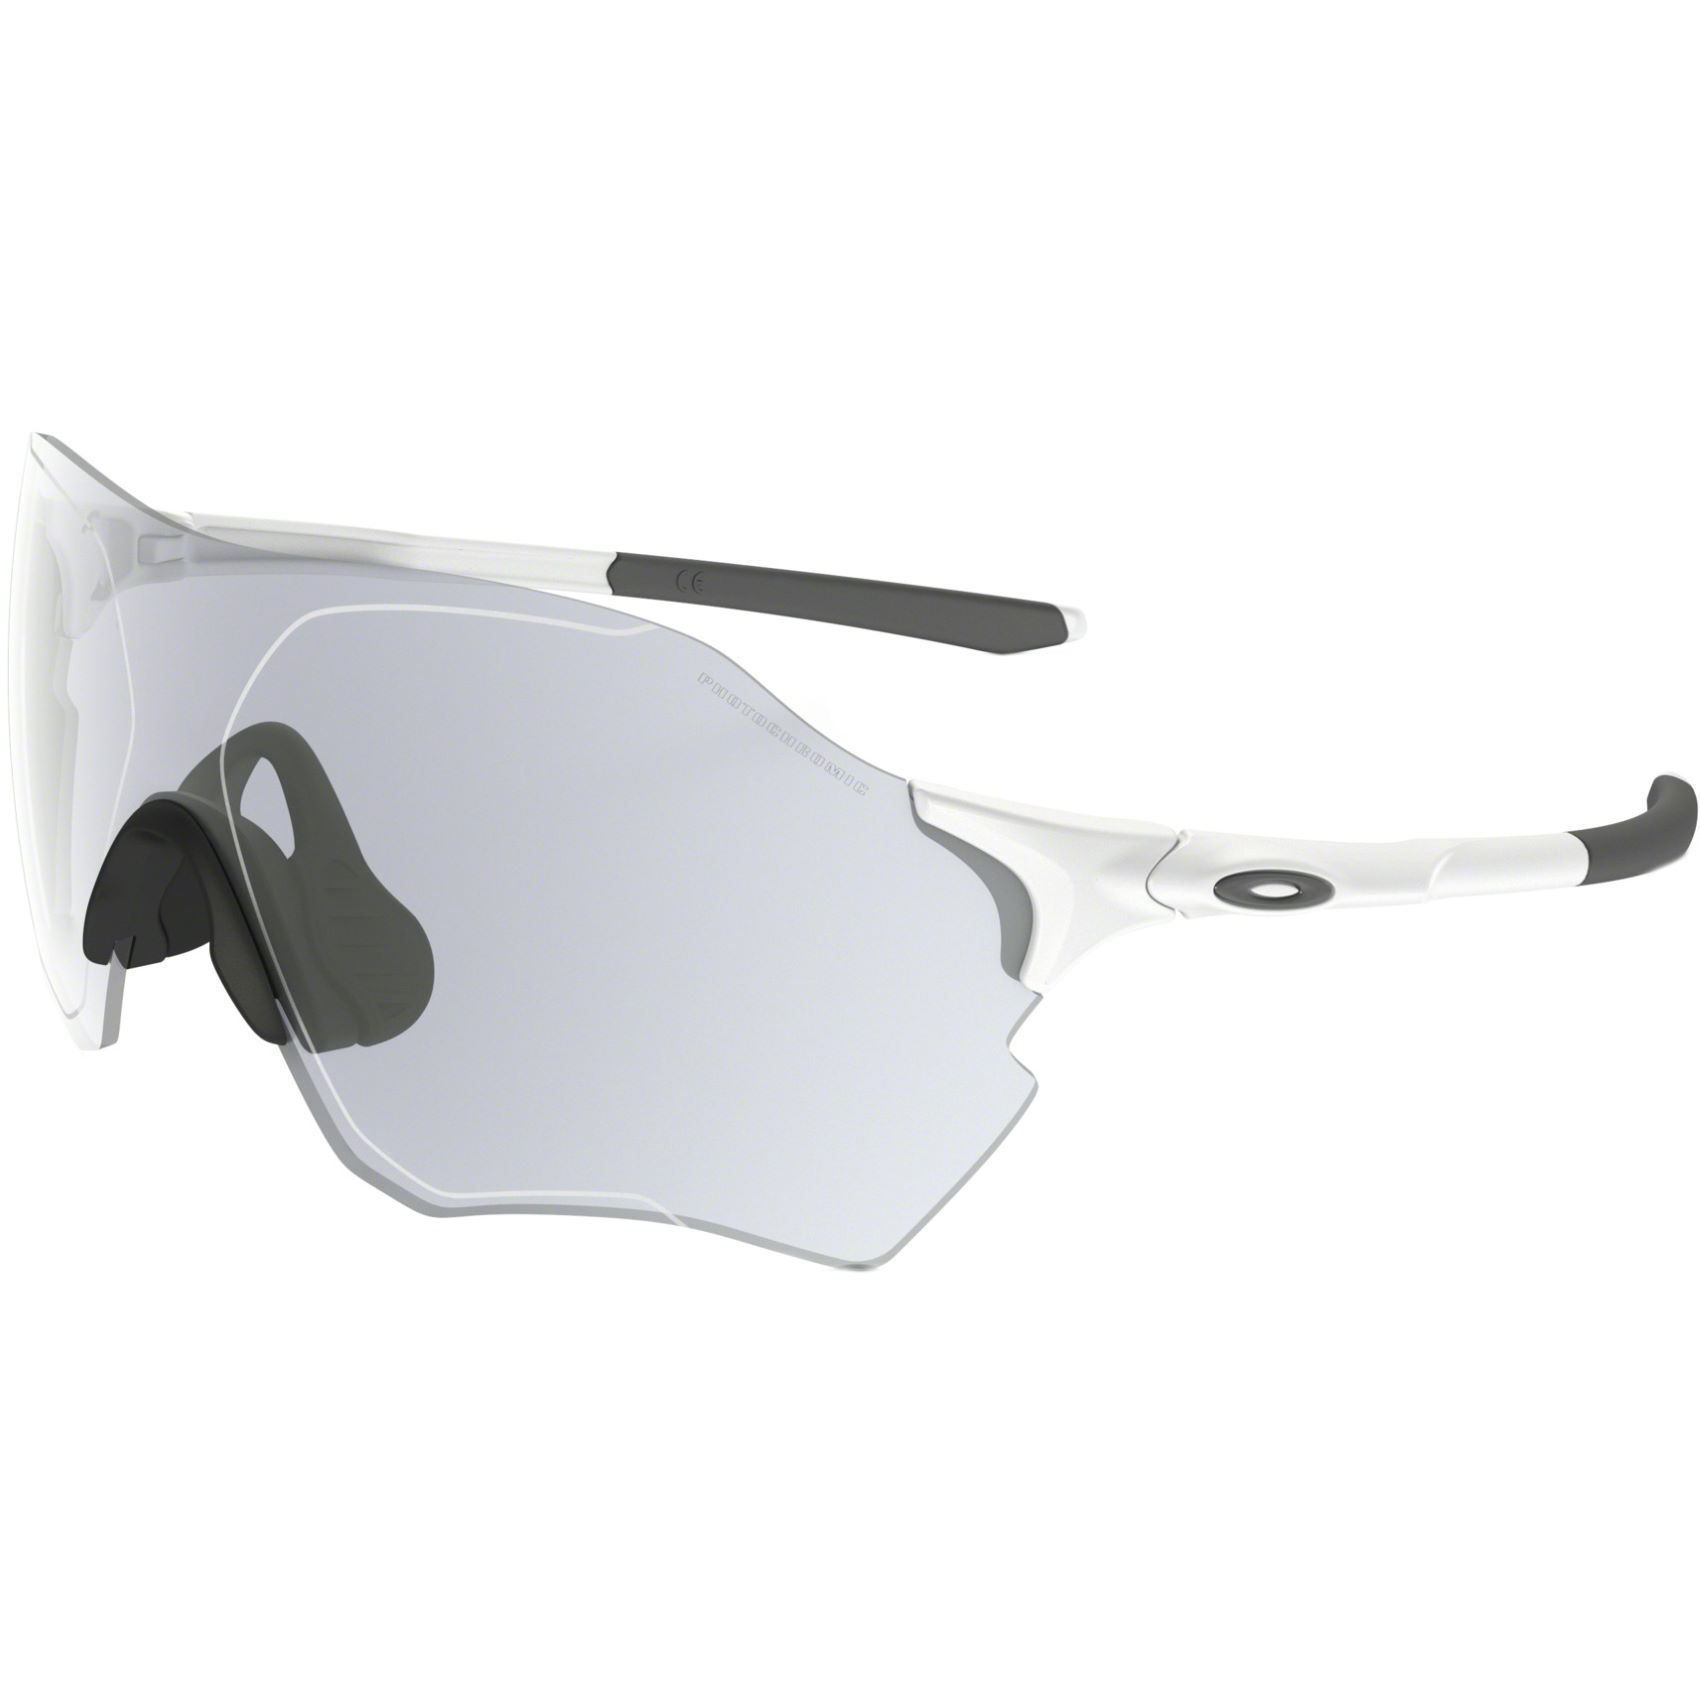 oakley eyewear qboy  Oakley EVZero Range Photochromic Sunglasses